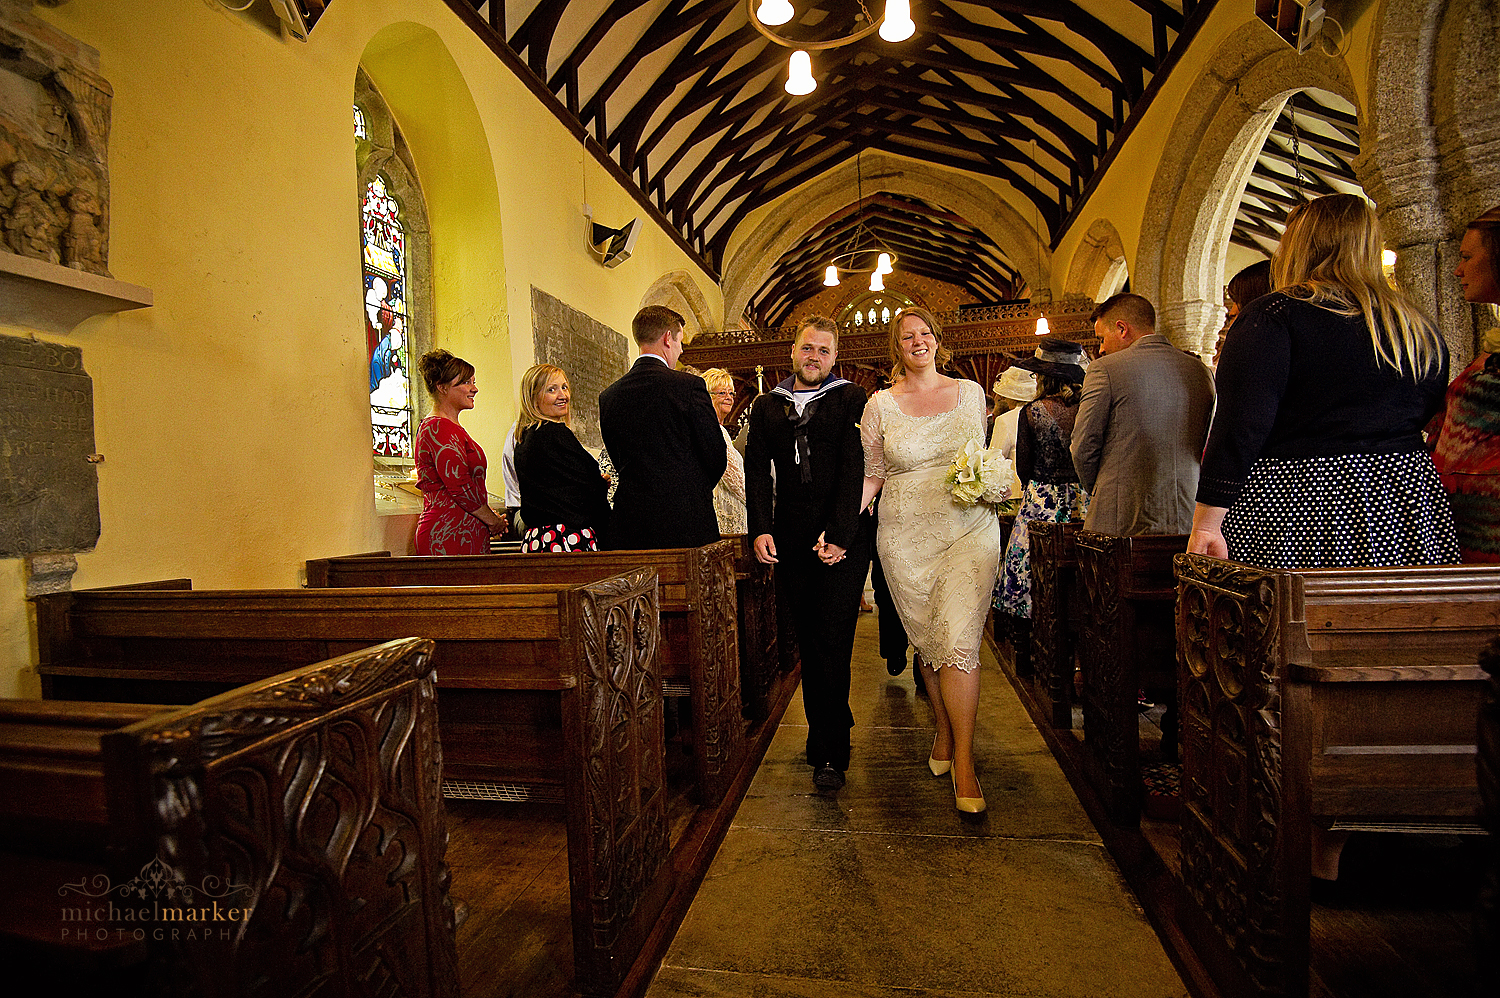 Bride and groom walking p the aisle at Sheepstor Church in devon